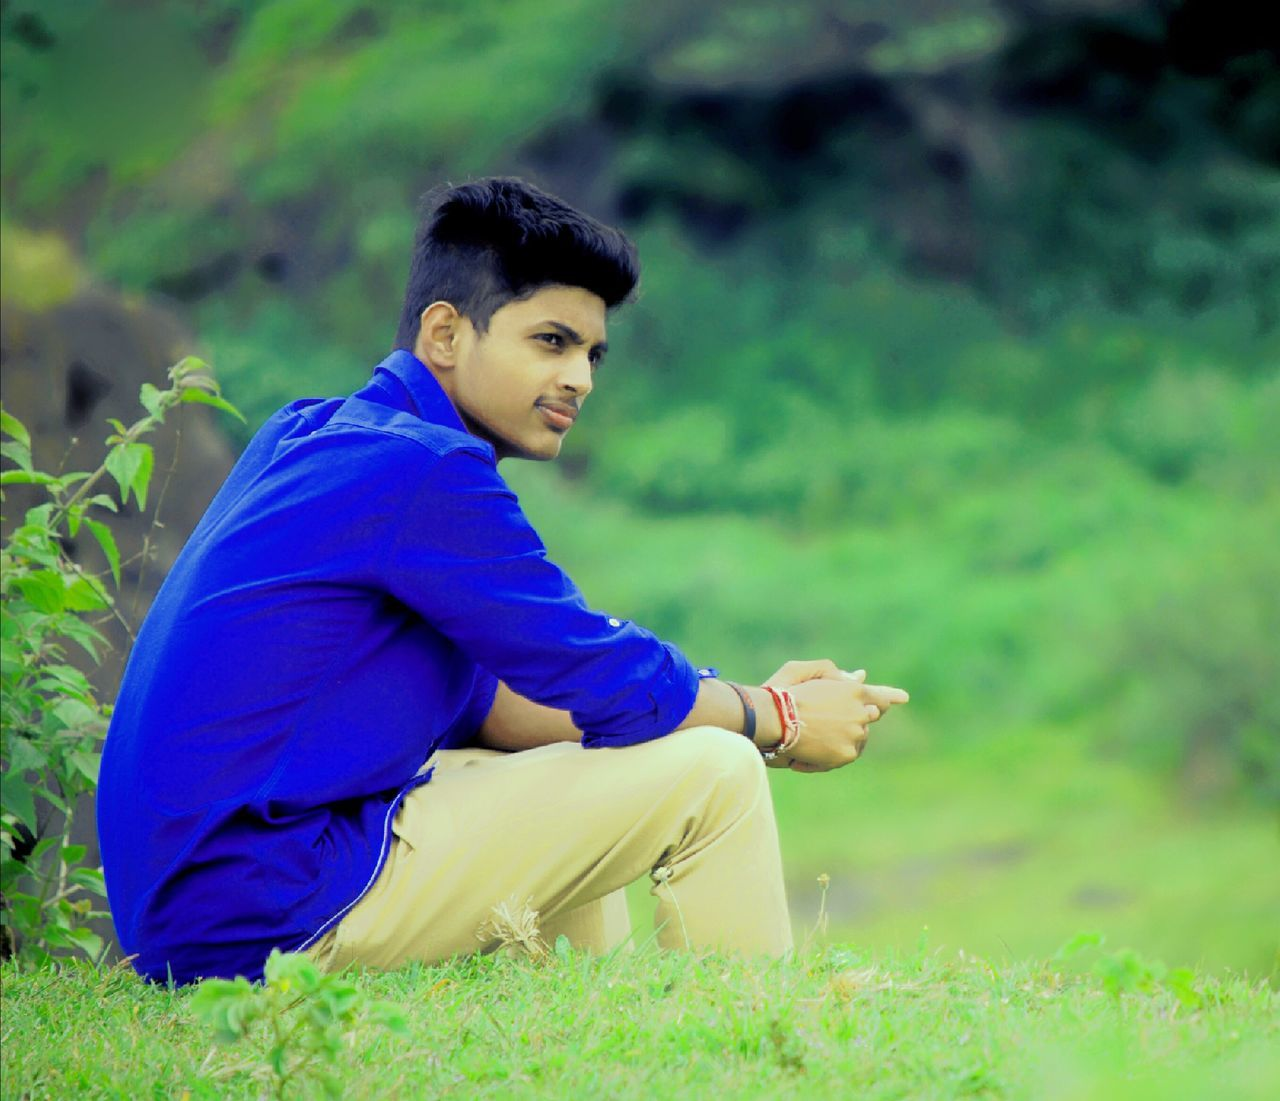 My pic Grass Outdoors Beauty Young Adult Nature Adult Happiness Beauty In Nature My Pic My Edit Photography Suggestions Accepted Gave Plz Suggestion Traveling Home For The Holidays